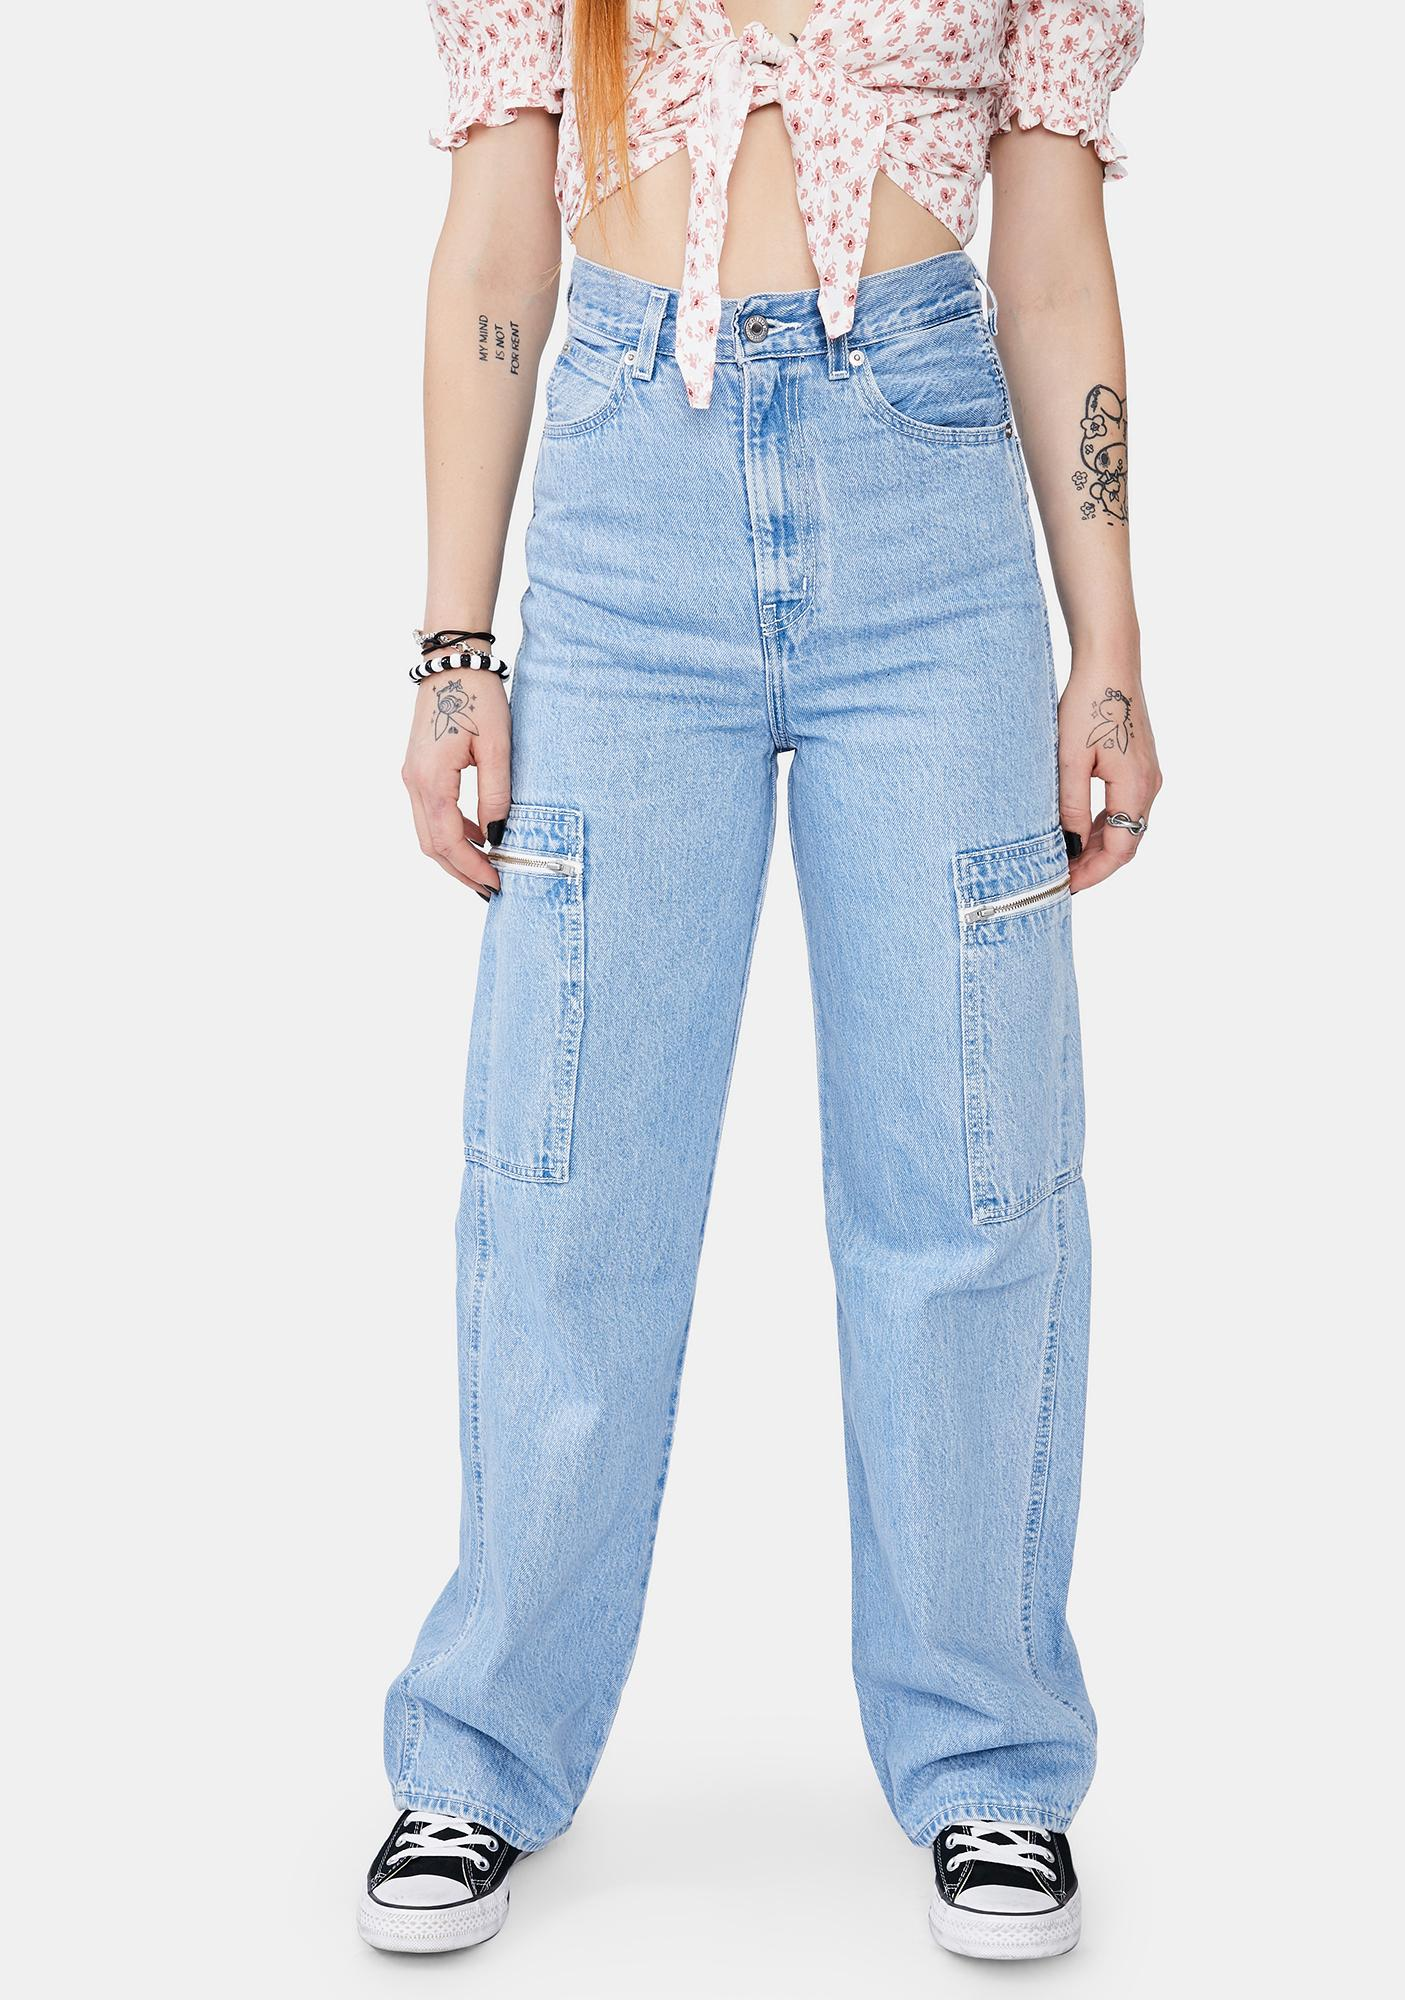 Levis Utility High Loose Jeans